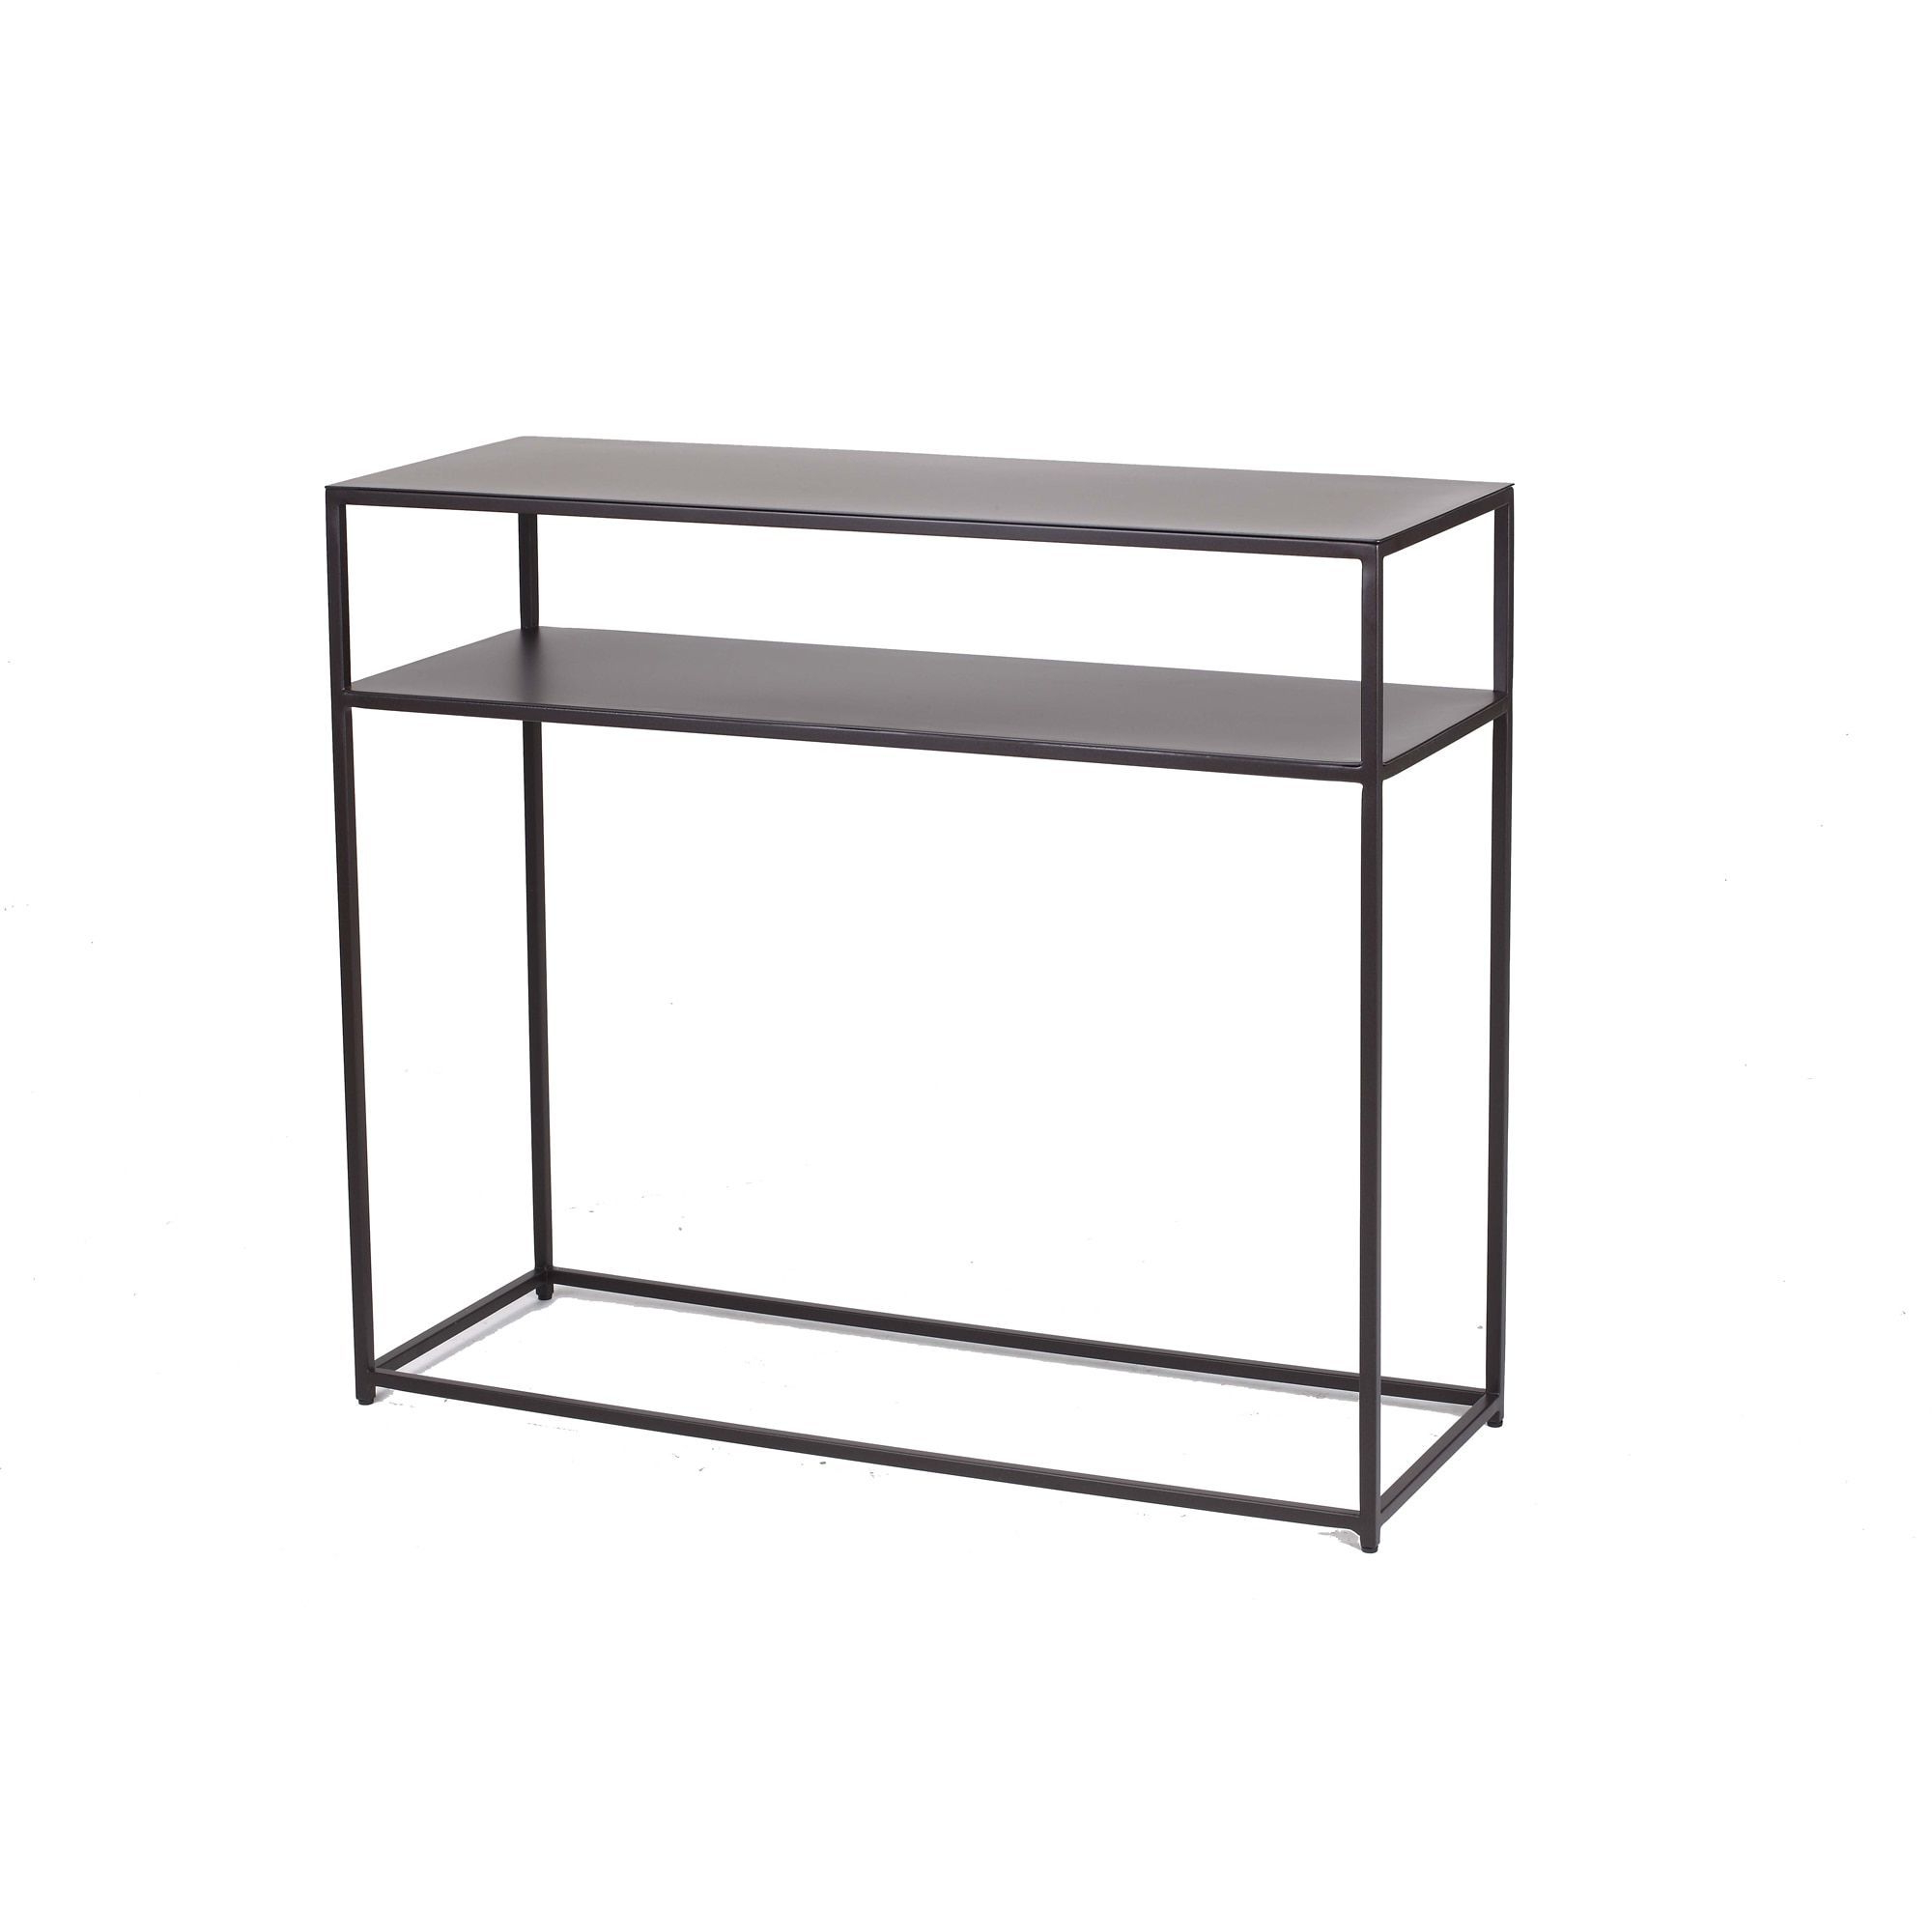 Tag Coco Console Table Urban Ii, Brown | Console Tables, Outlet Throughout Echelon Console Tables (View 19 of 20)